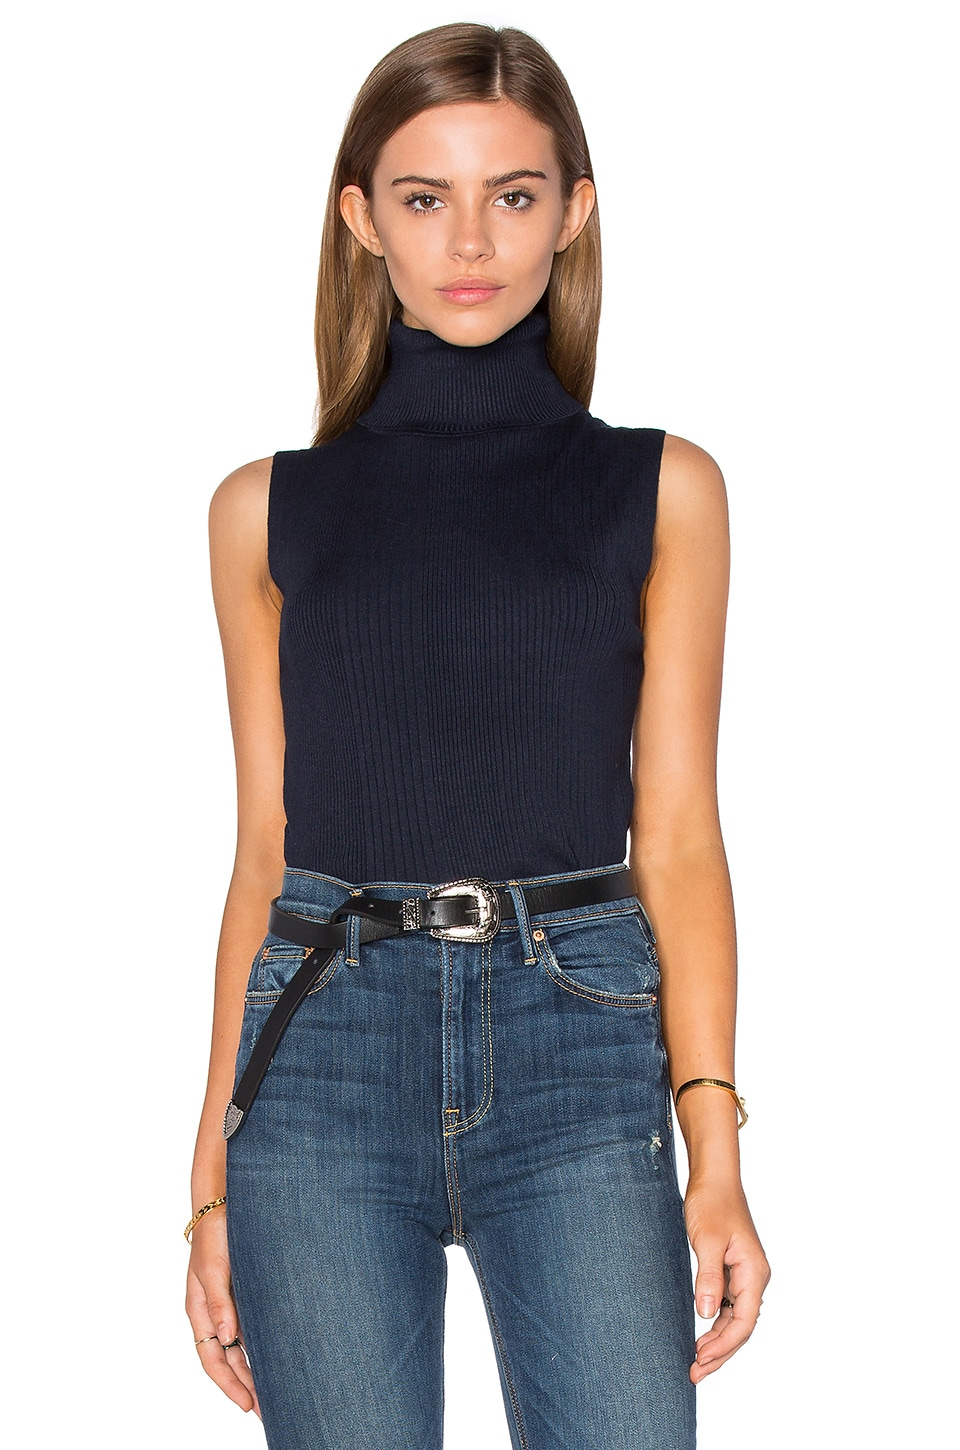 525 america Sleeveless Turtleneck Sweater in Classic Navy